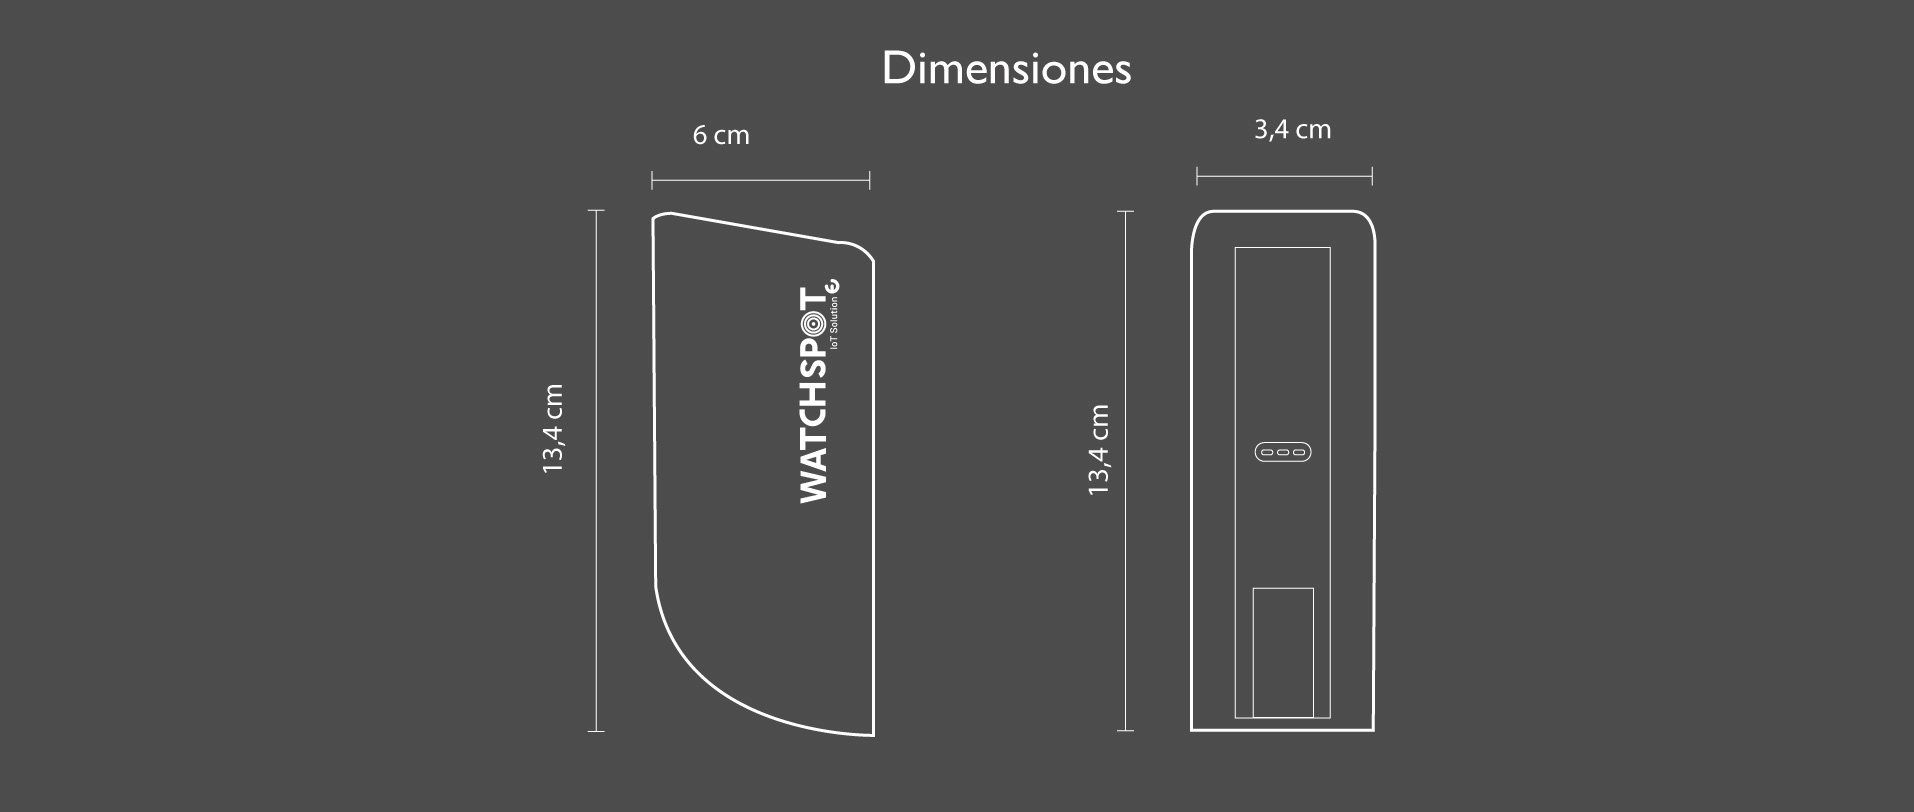 WatchSpot dimensiones